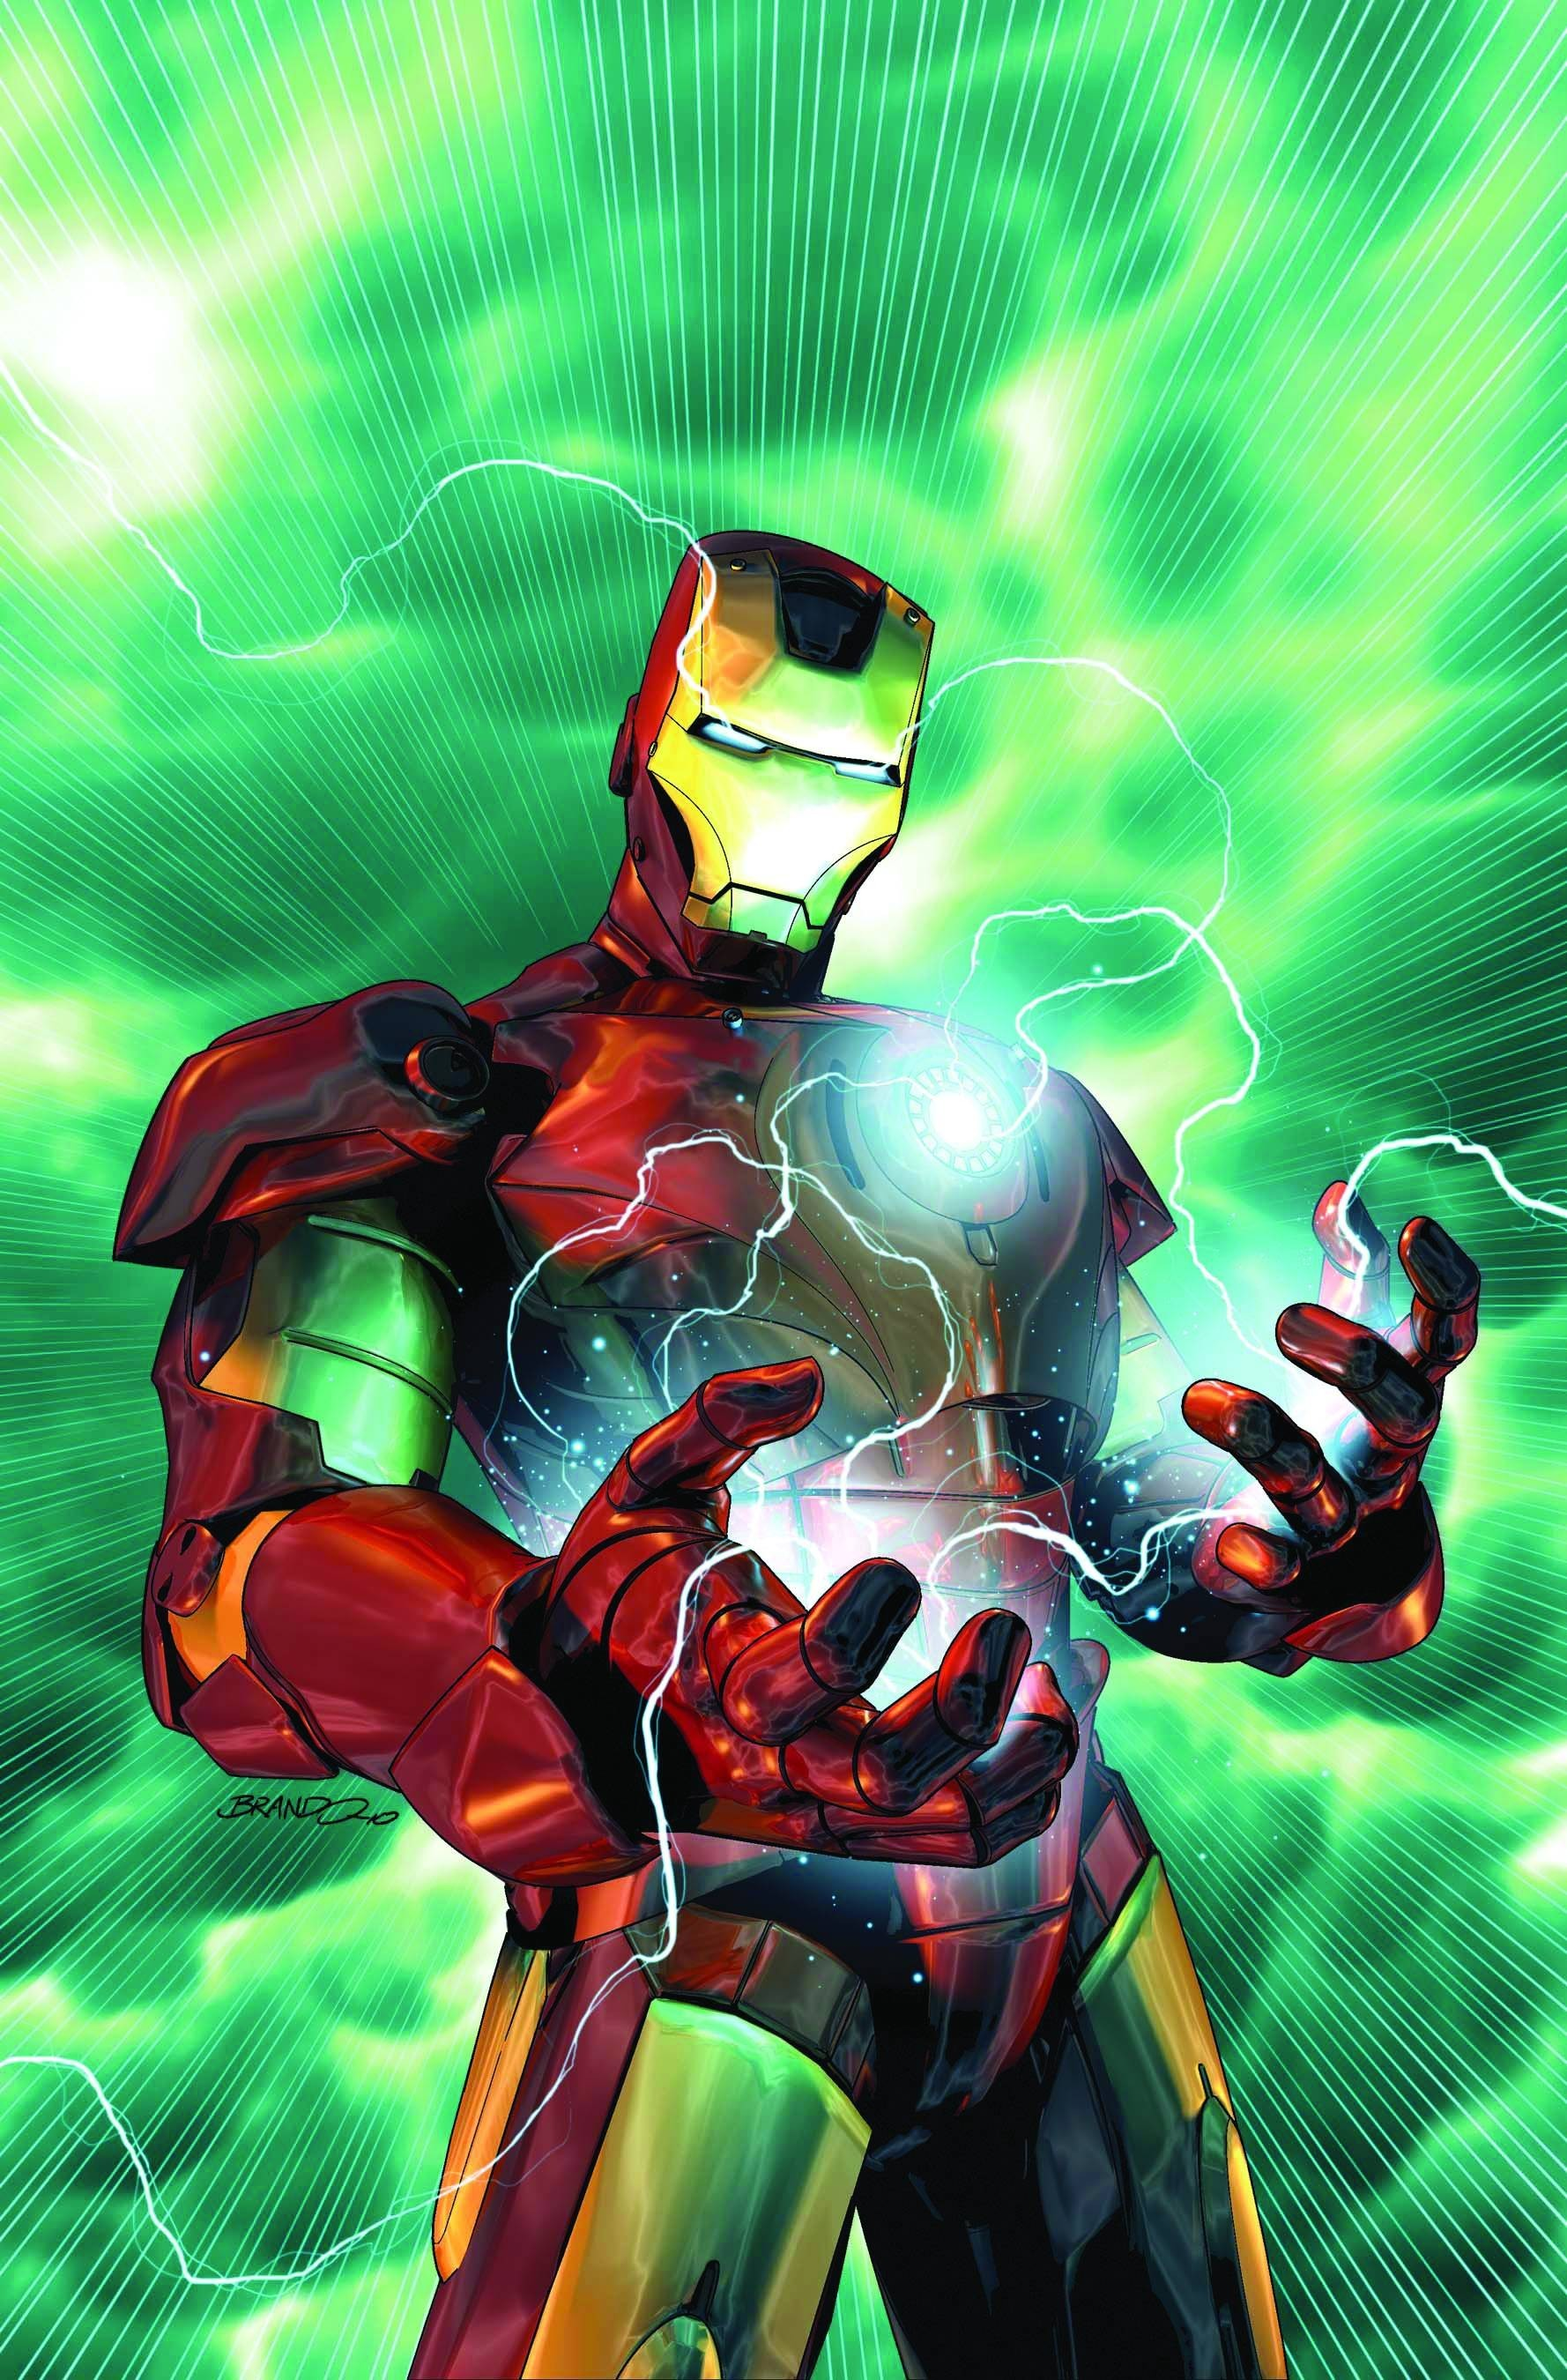 Iron Man comics superheroes HD Wallpaper